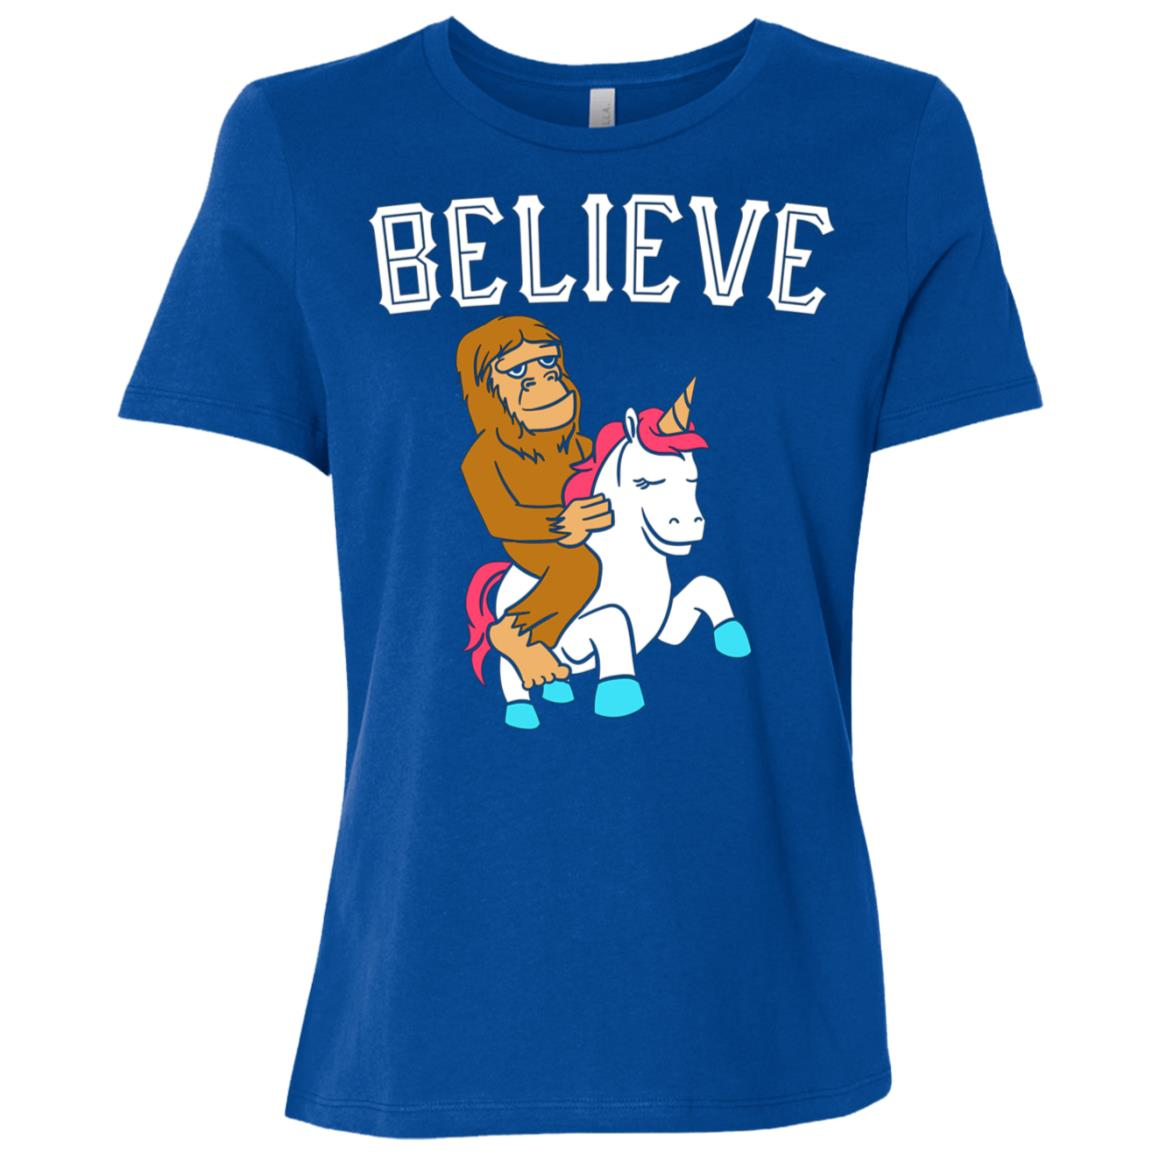 Believe Bigfoot Unicorn Funny Sasquatch Women Short Sleeve T-Shirt